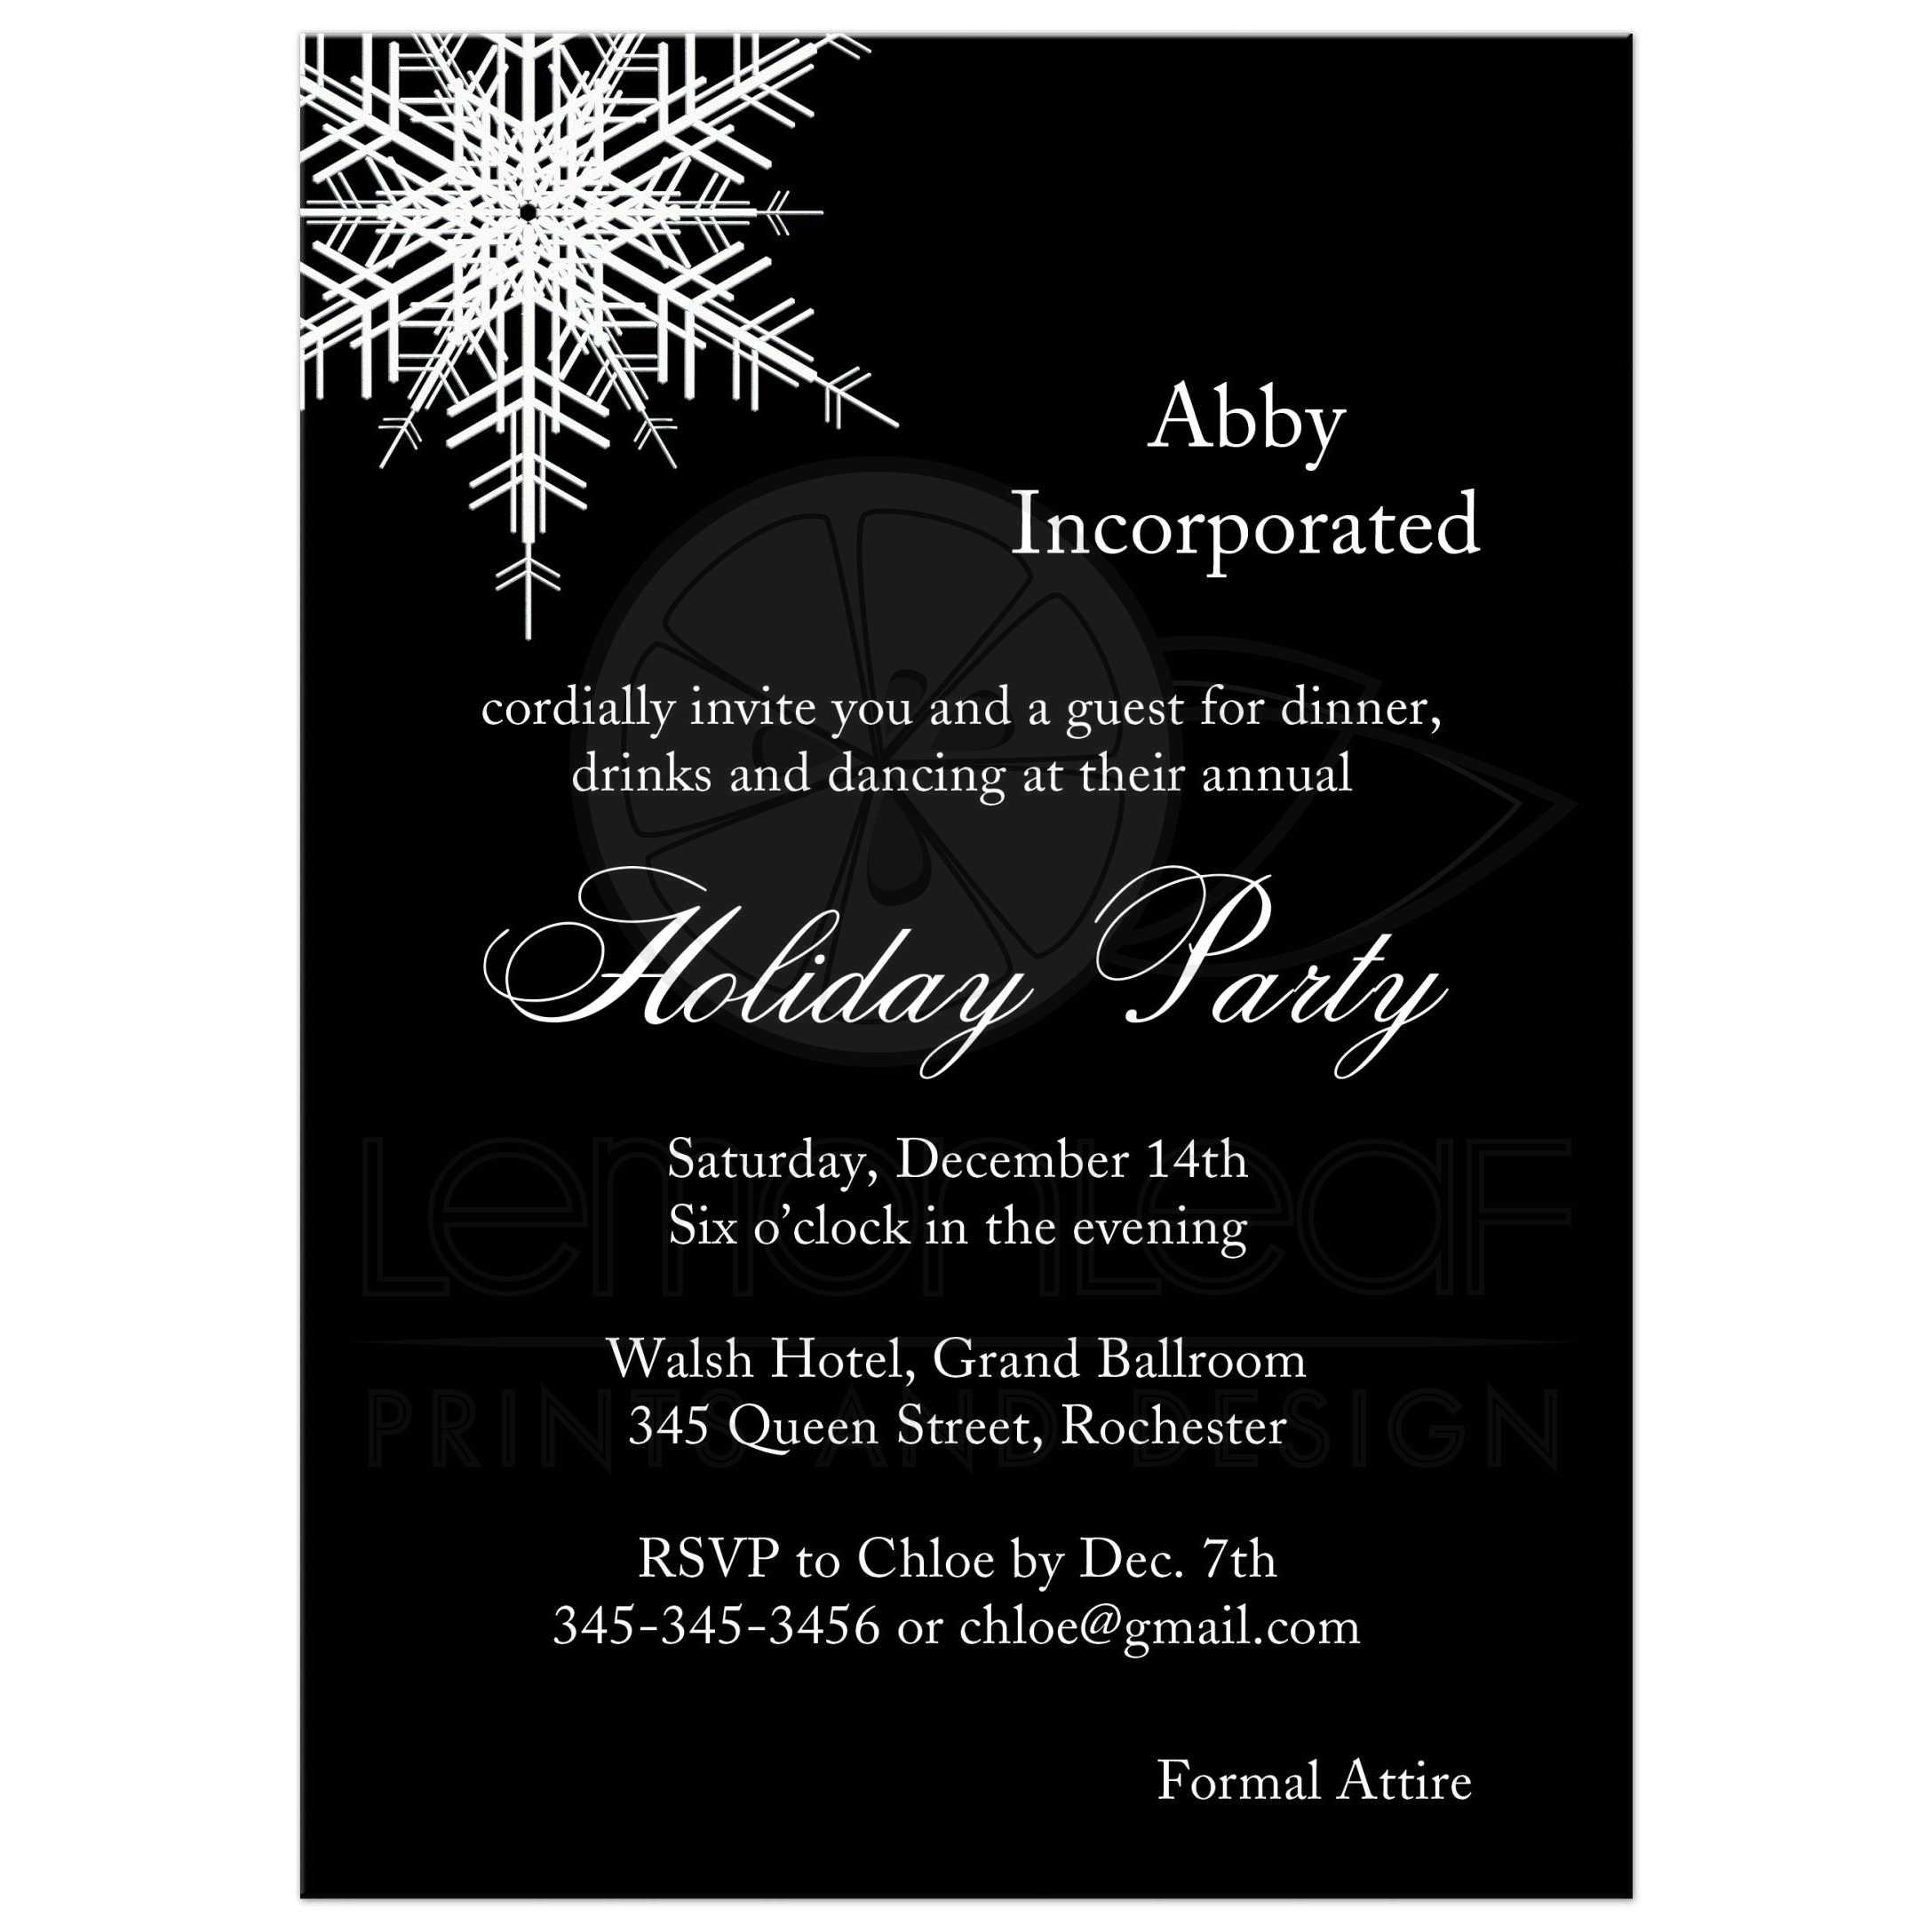 Office Party Invite Pertaminico - Office holiday party invitation template